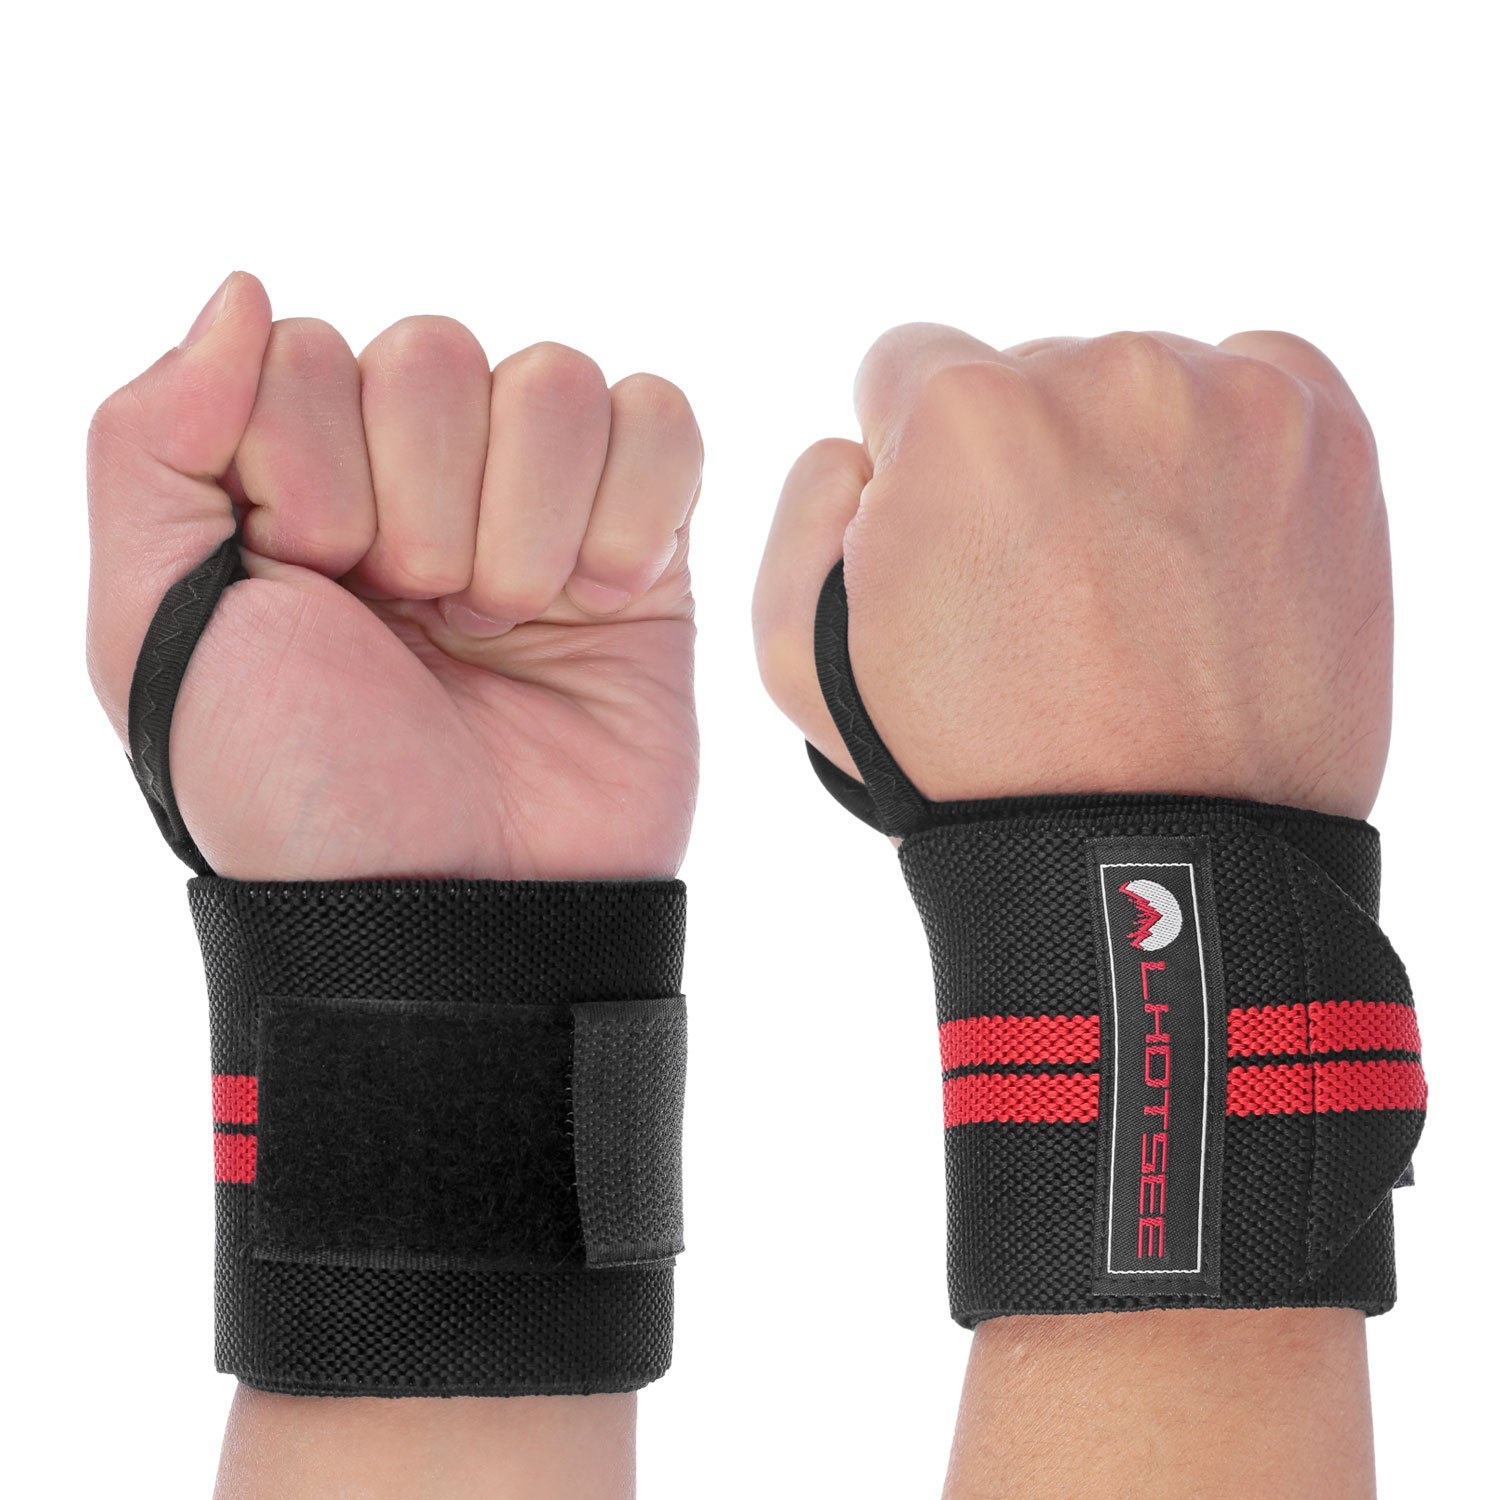 LHOTSEE Premium Wrist Straps,Professional Weight Lifting Training Wrist Straps Support Braces Wraps For Men and Women (Red) by LHOTSEE (Image #1)